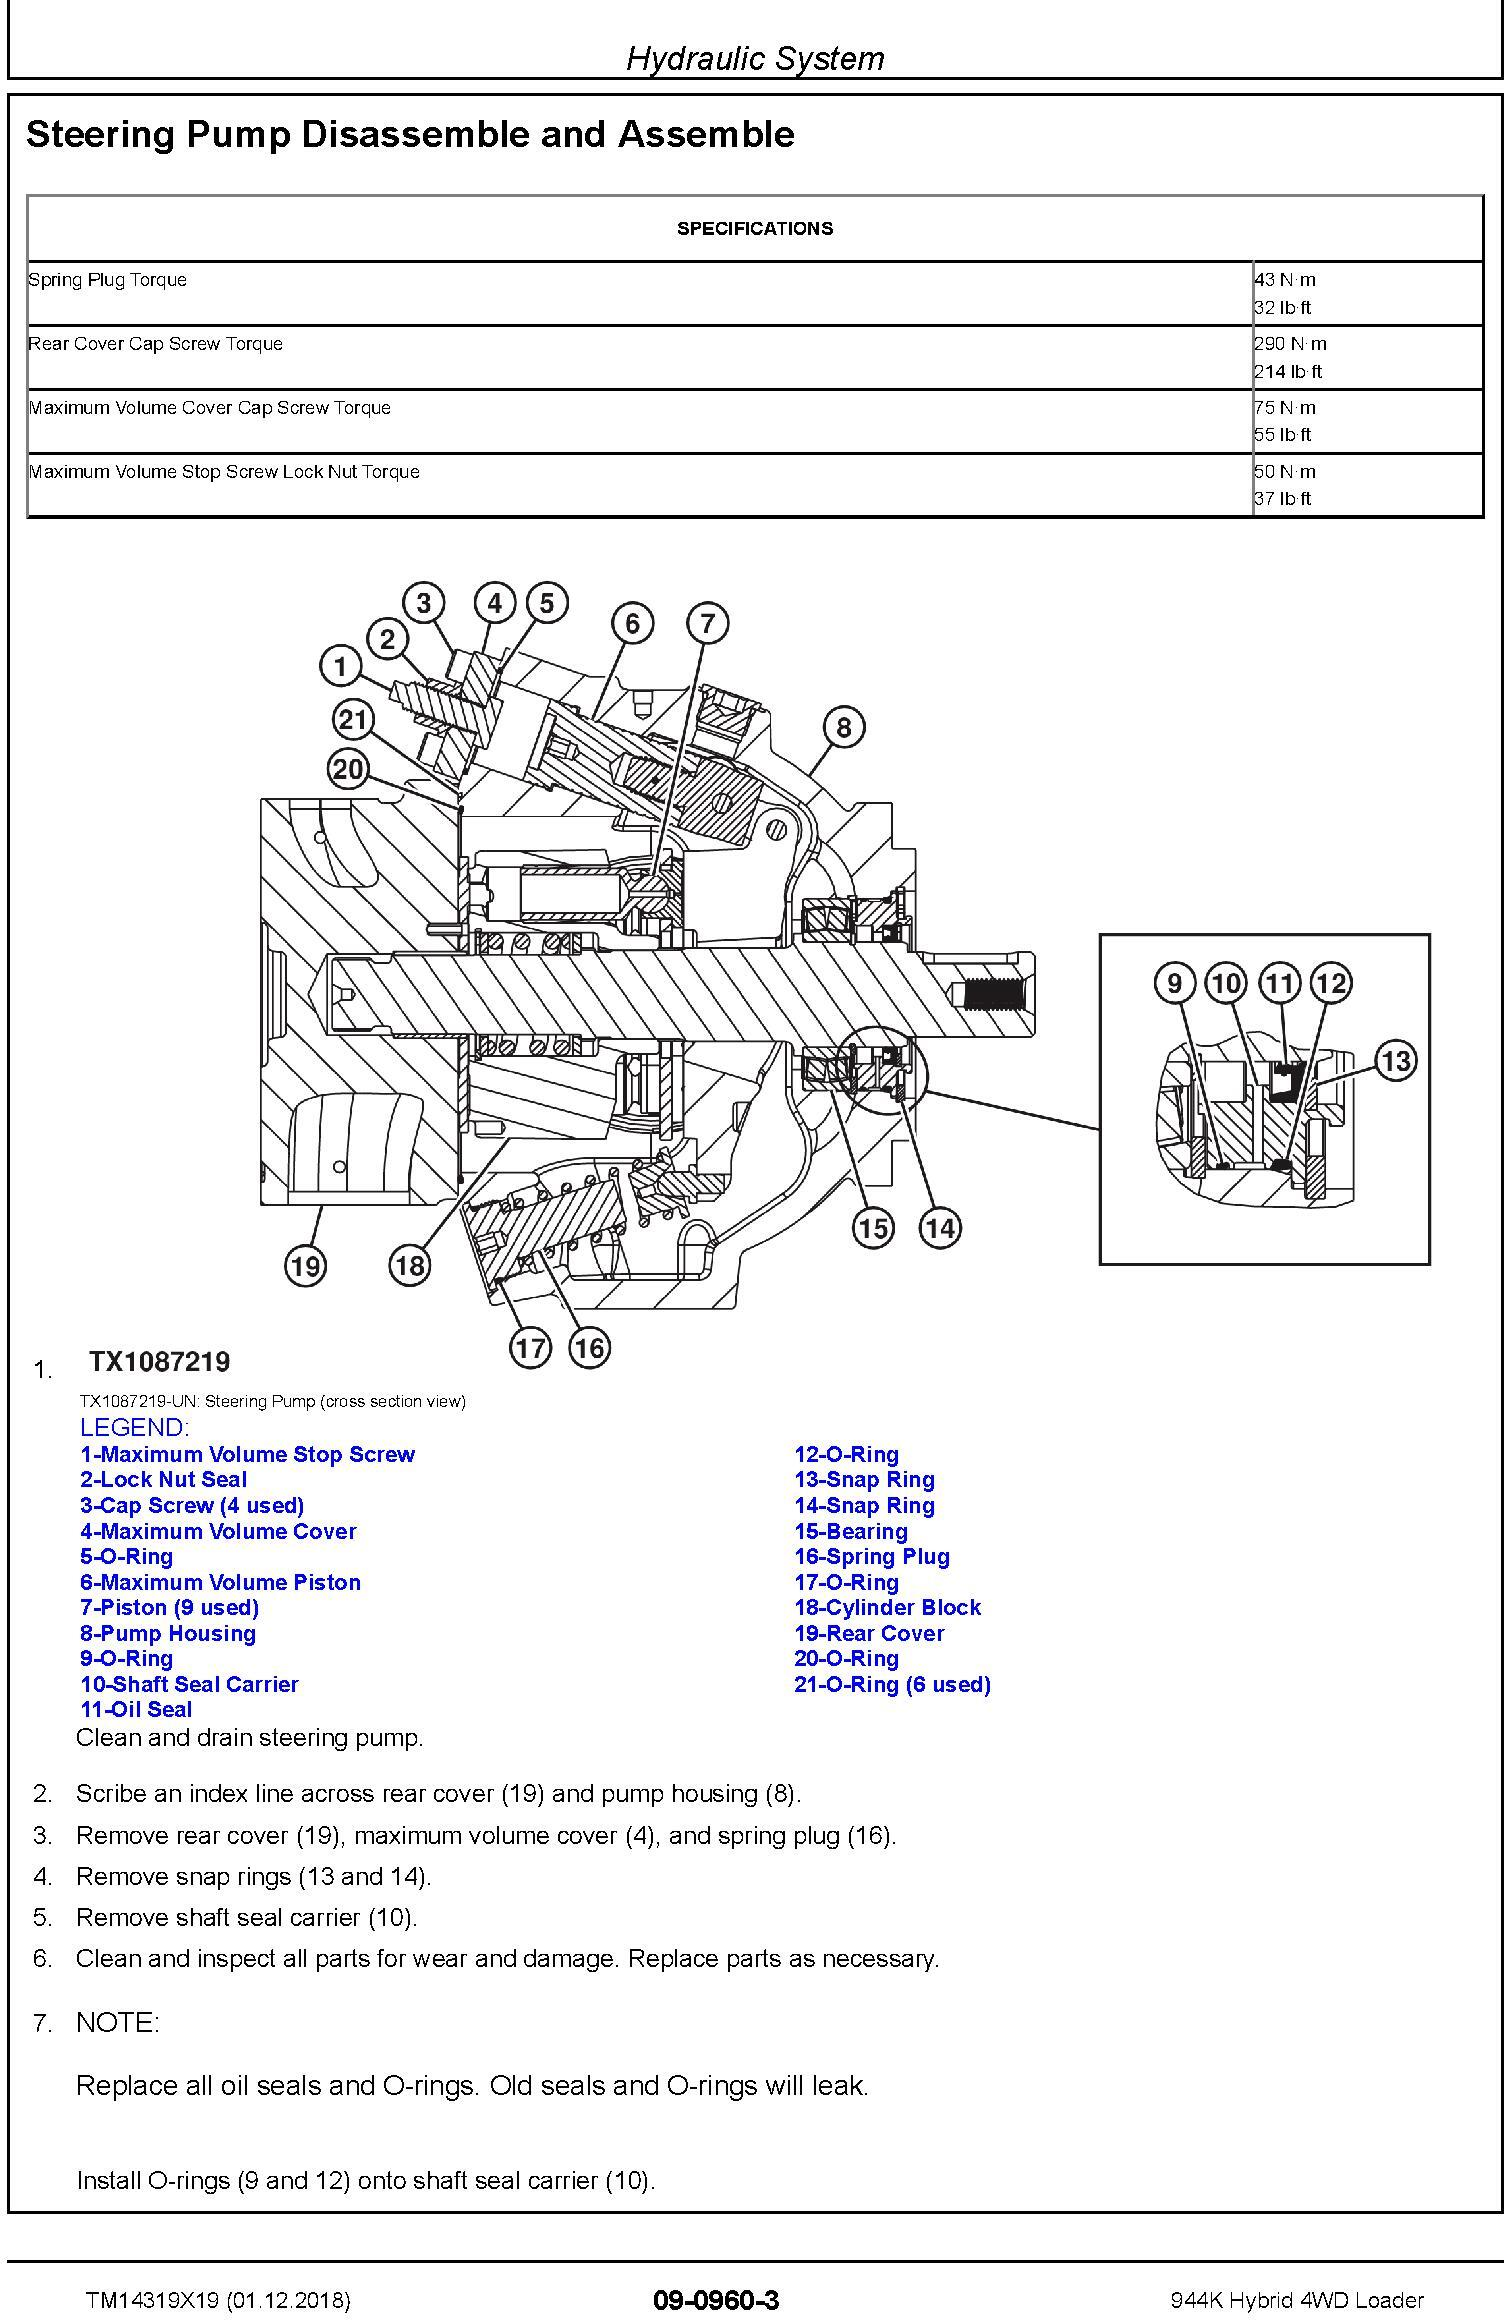 John Deere 944K Hybrid 4WD Loader (SN. F690605-) Repair Technical Service Manual (TM14319X19) - 3